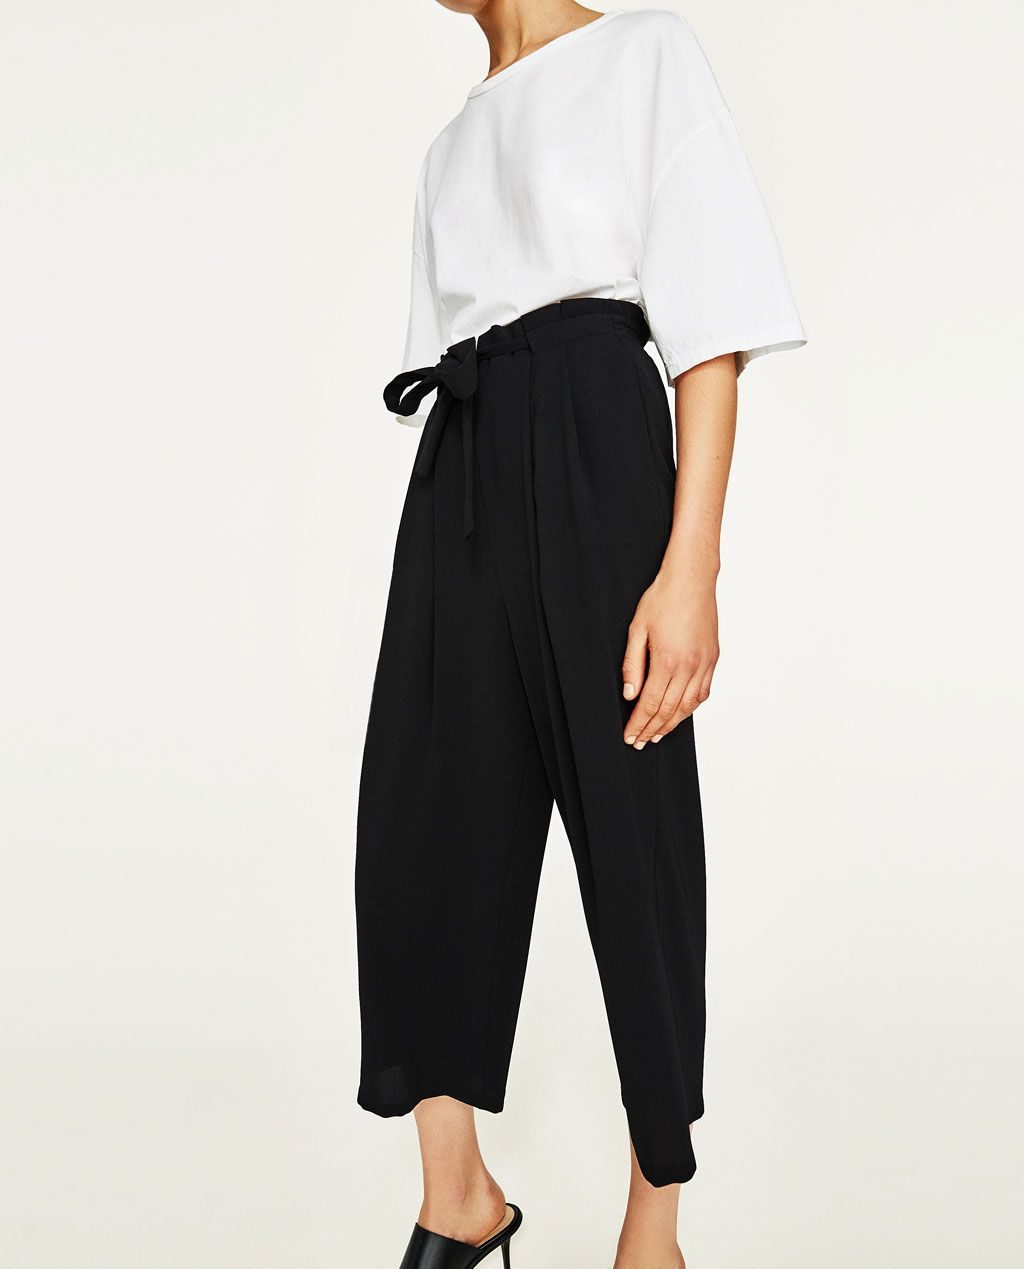 CULOTTES - TROUSERS I SHORTS-SALE-WOMAN